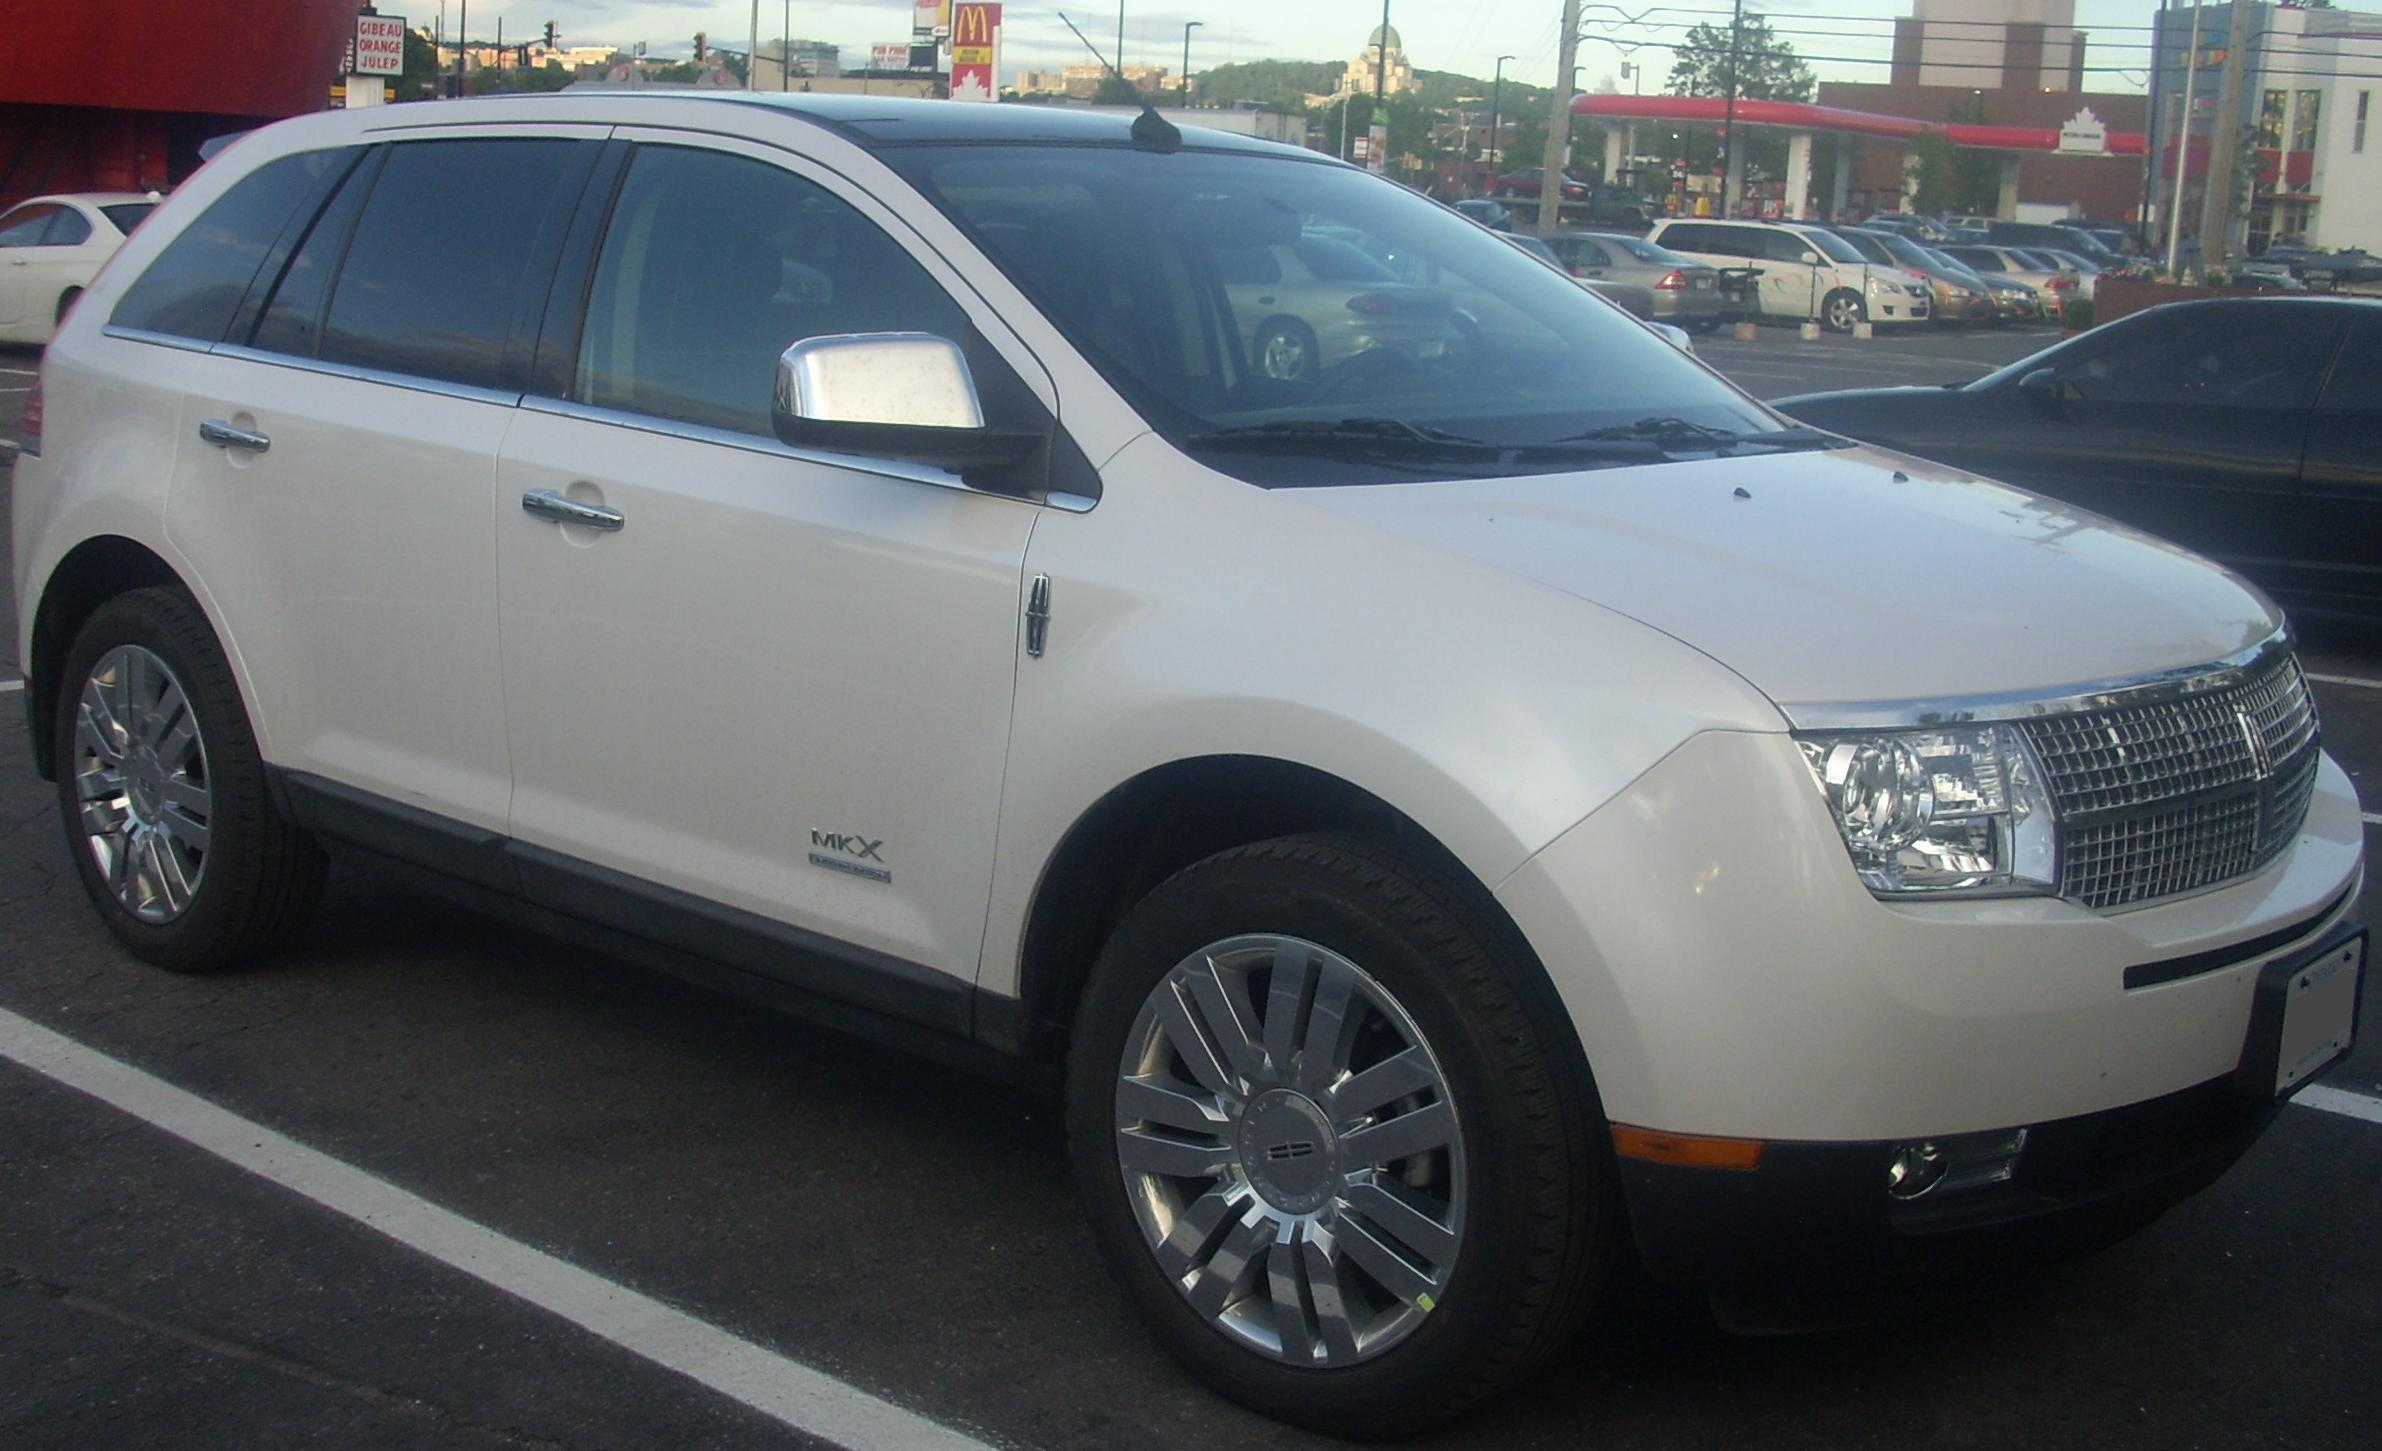 l lincoln door mkx trunk x mkz image awd size sedan